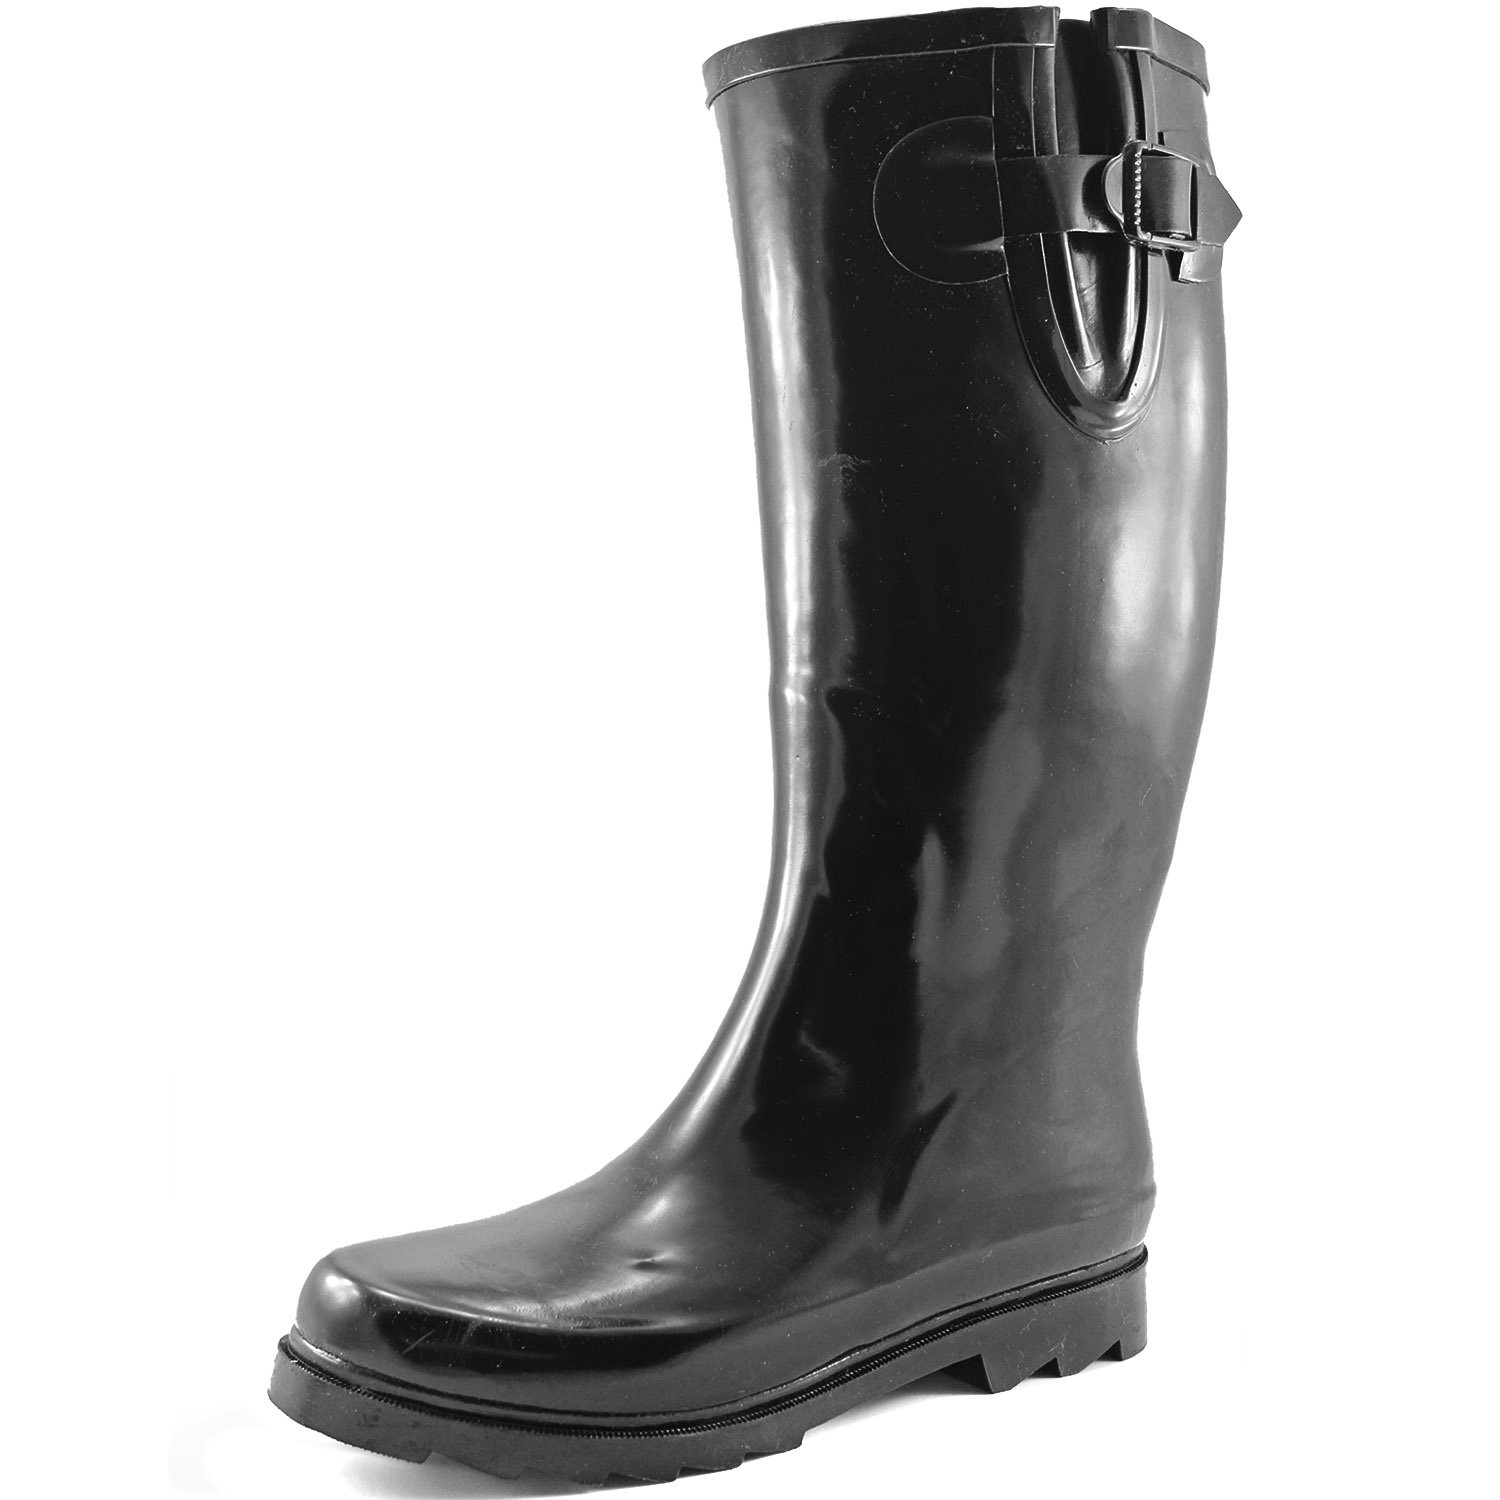 DailyShoes Women's Puddles Rain and Snow Boot Multi Color Mid Calf Knee High Rainboots,Black 9 B(M) US